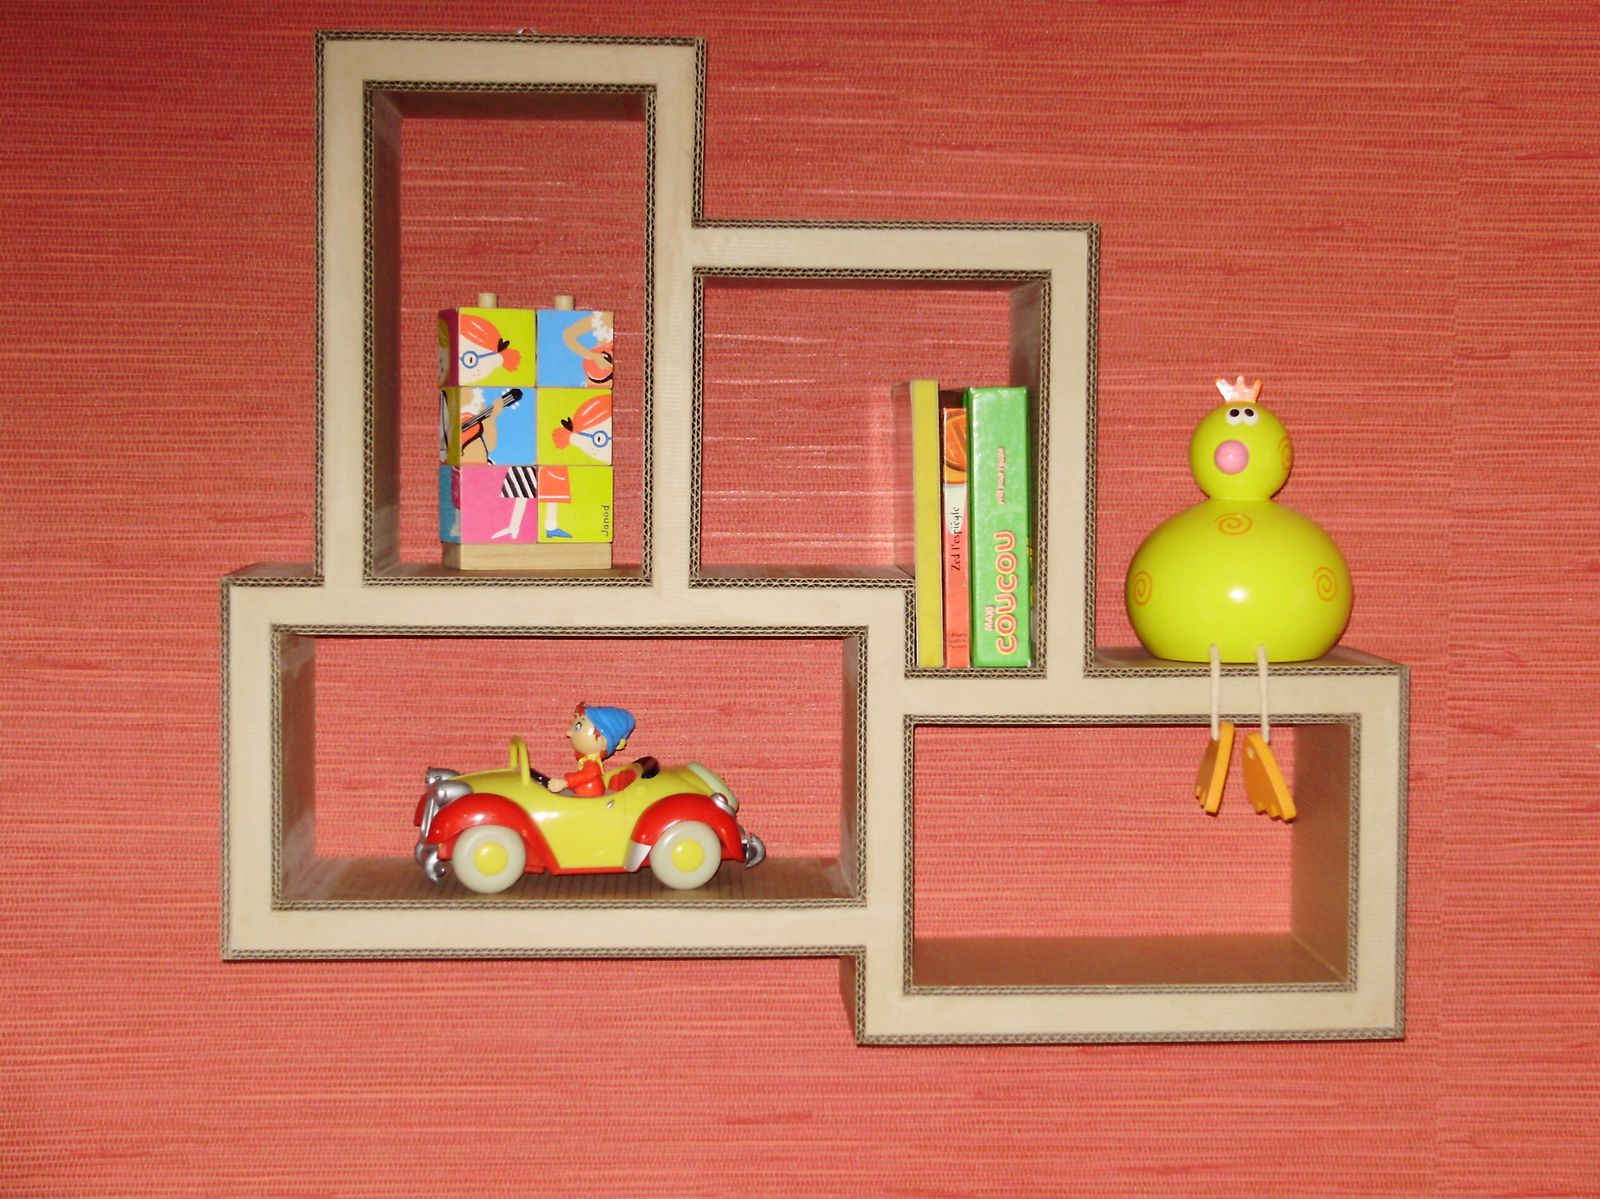 Cuisine des enfants cake ideas and designs for Etagere niche murale